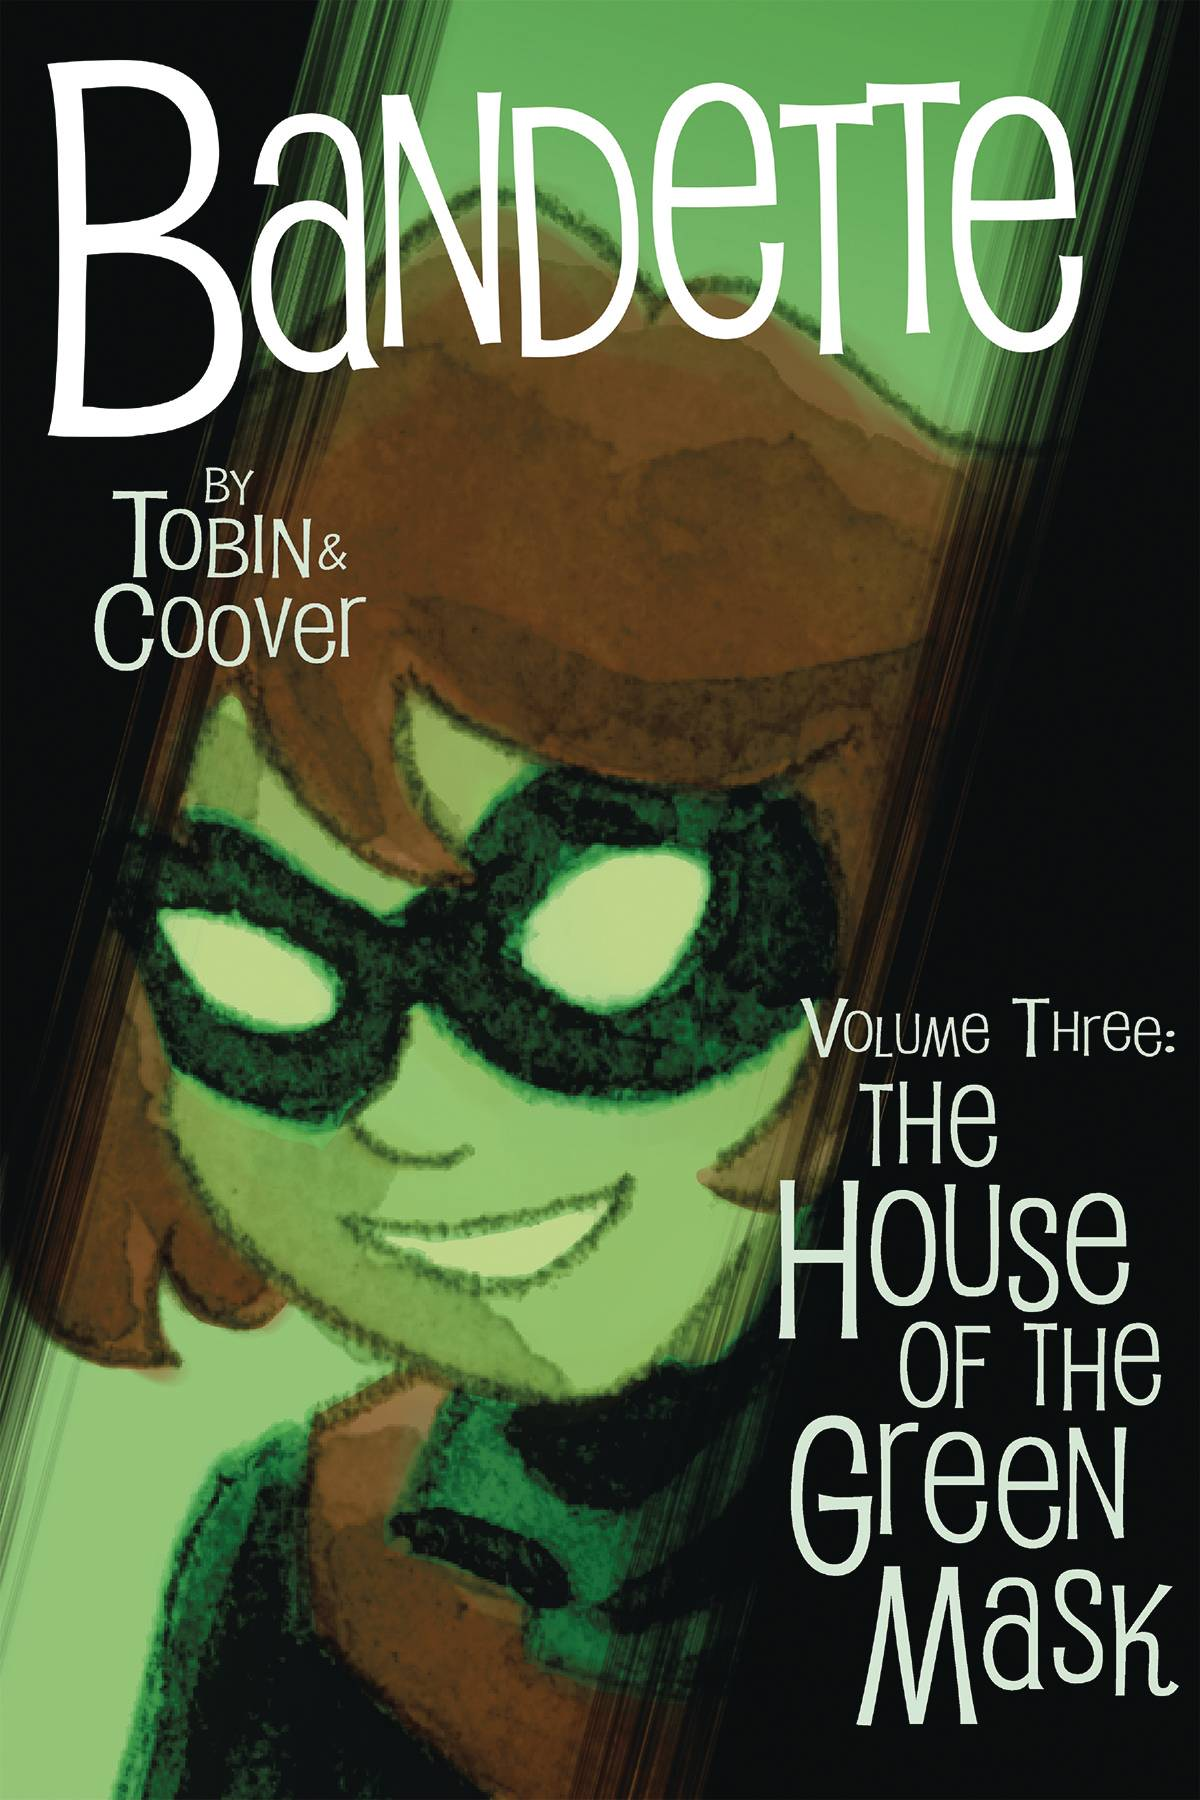 BANDETTE TP VOL 03 THE OUSE OF THE GREEN MASK